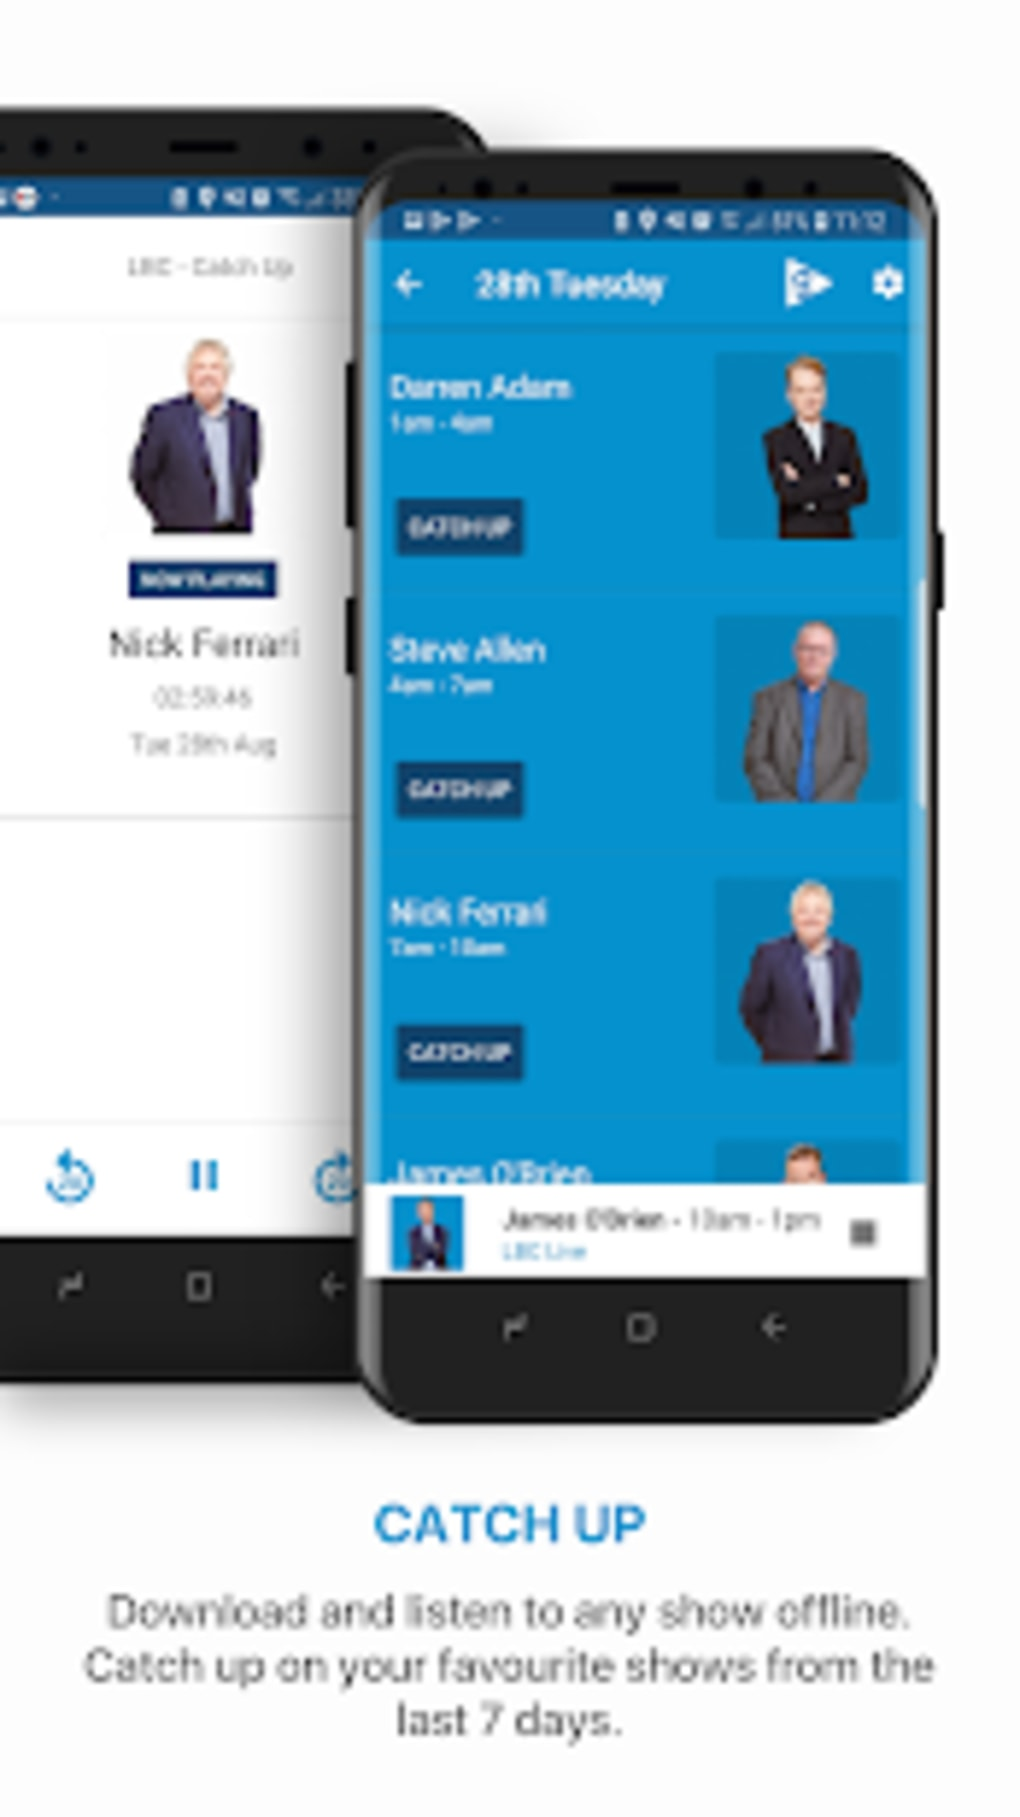 LBC Radio App for Android - Download